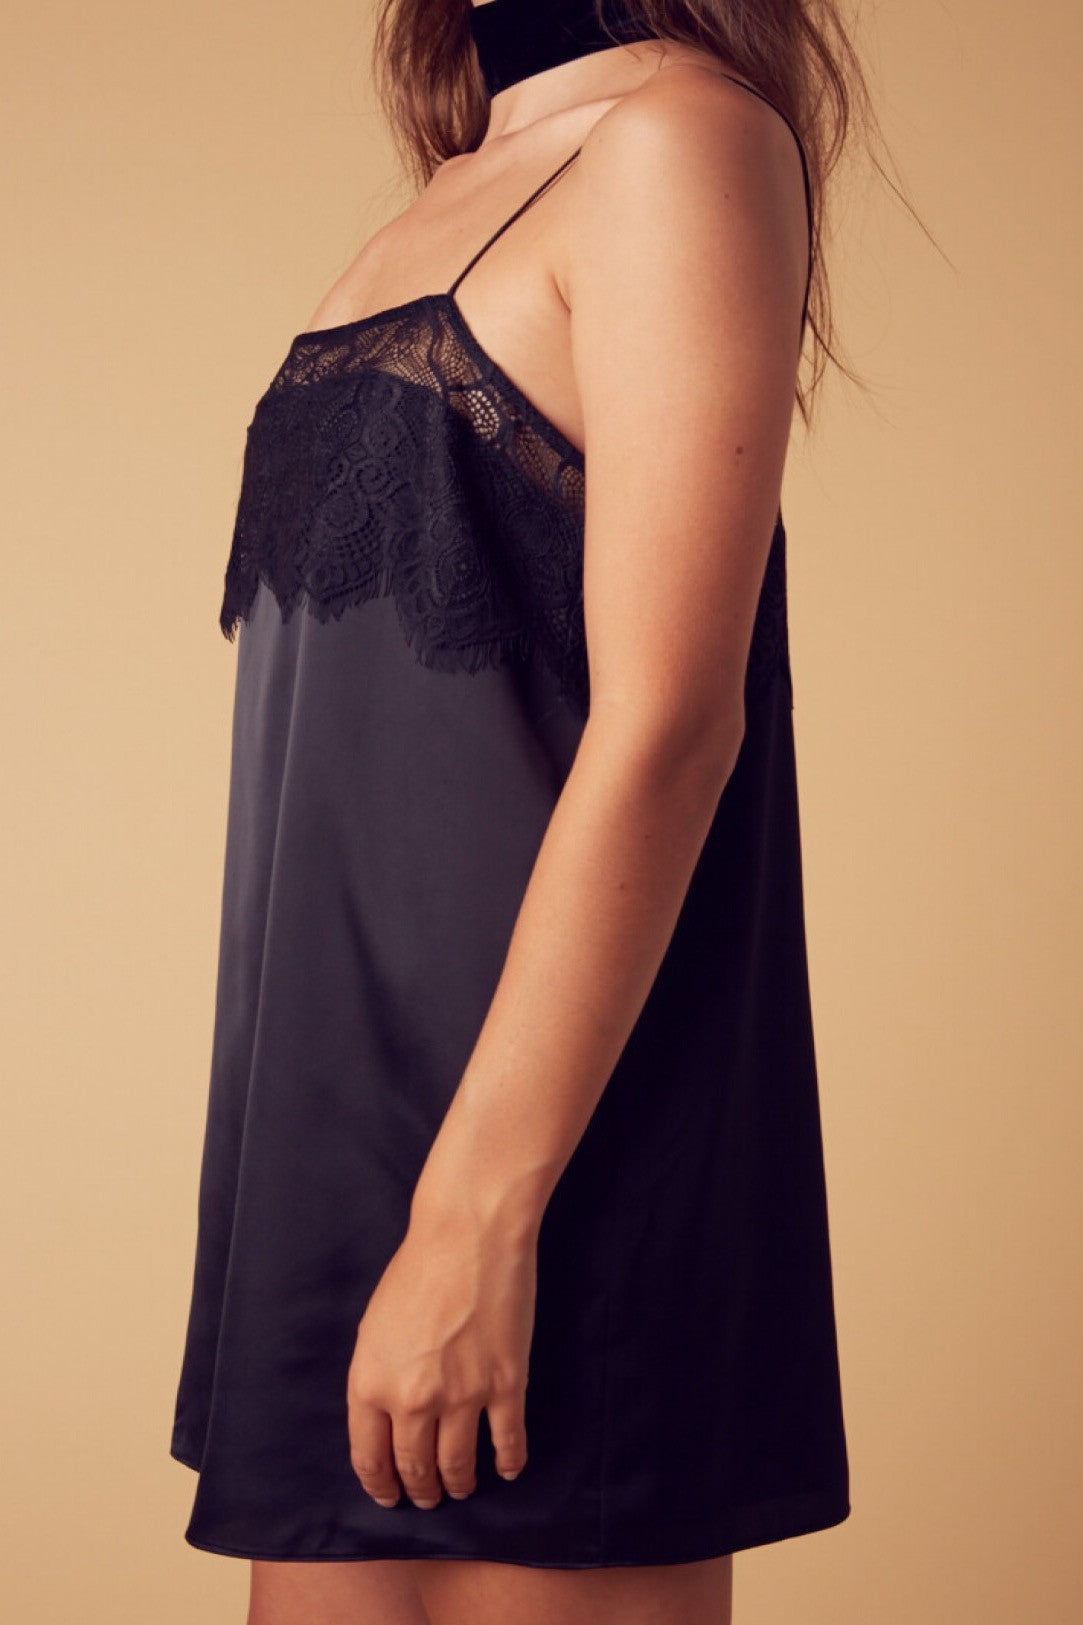 Janelle Satin and Lace Dress-Black - Hapa Clothing - 3